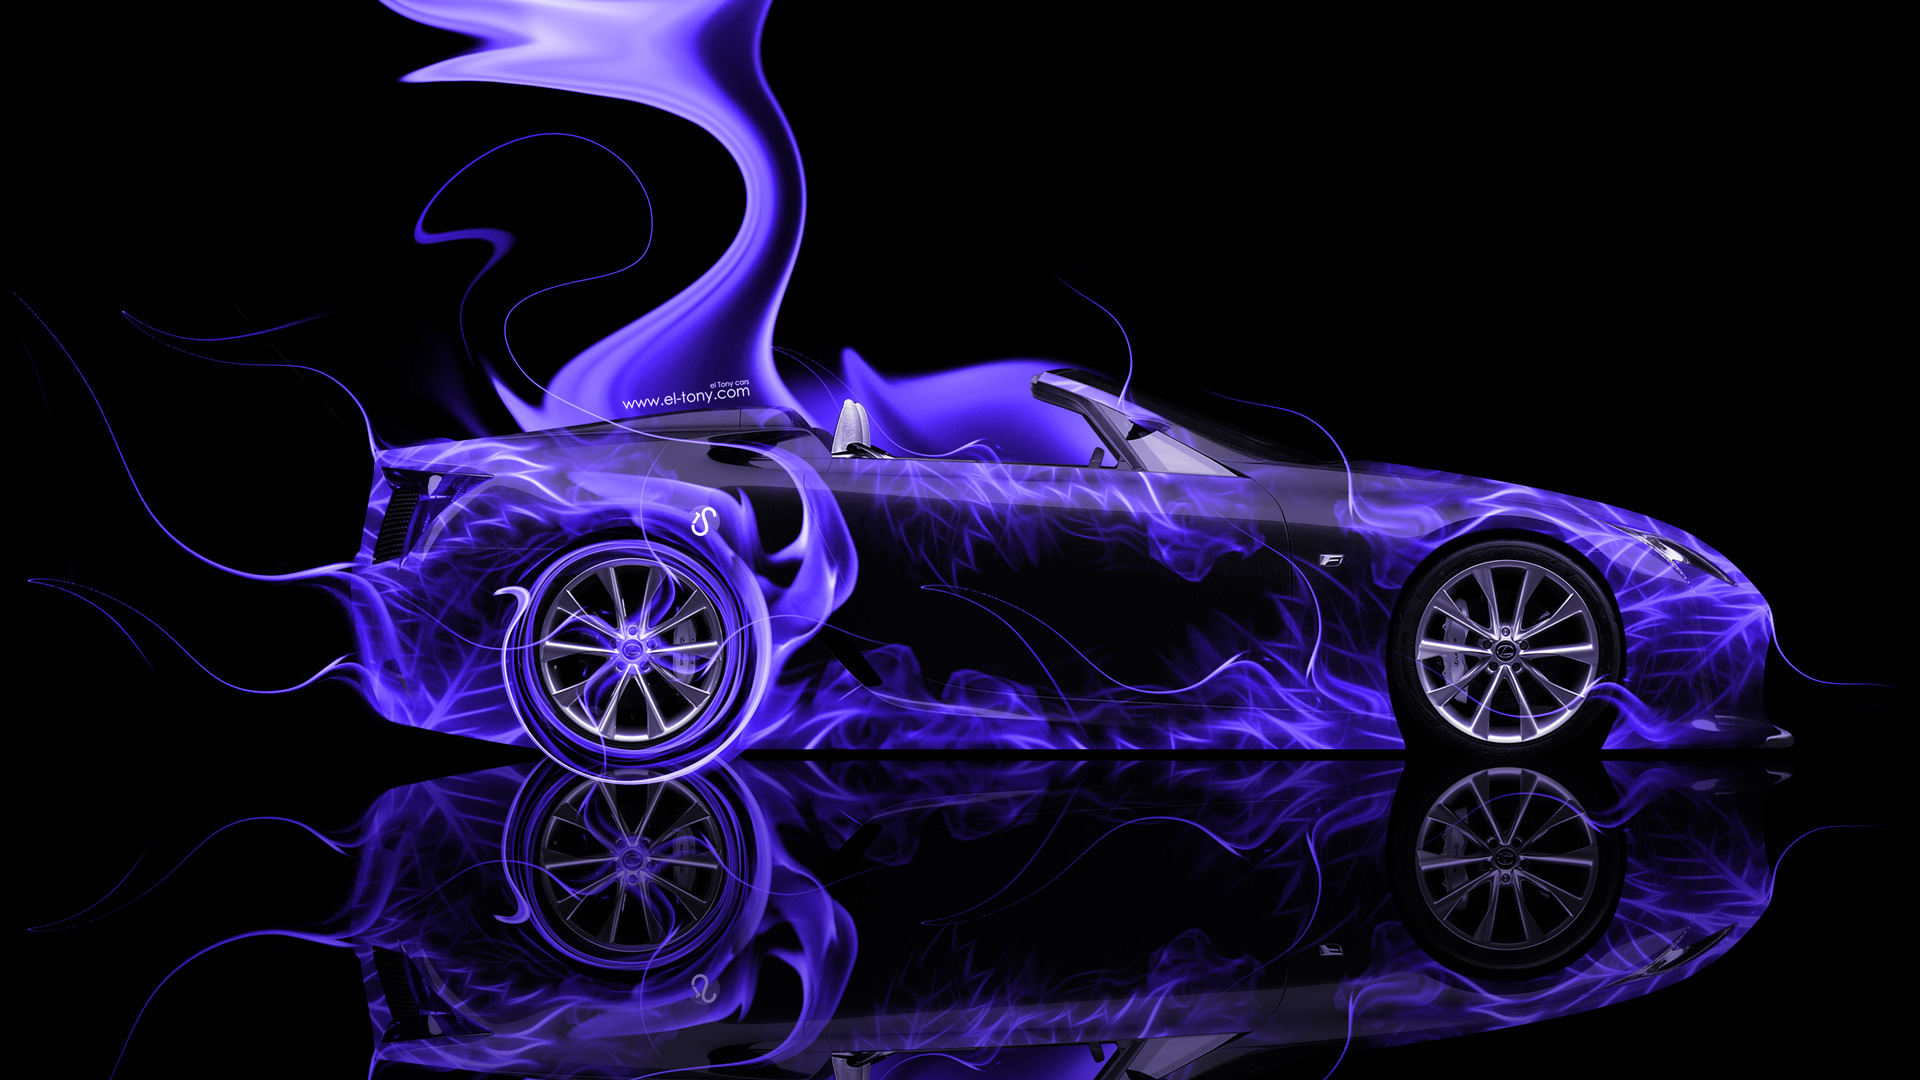 Lexus LFA Roadster Side Super Fire Abstract Car 2014 | el Tony